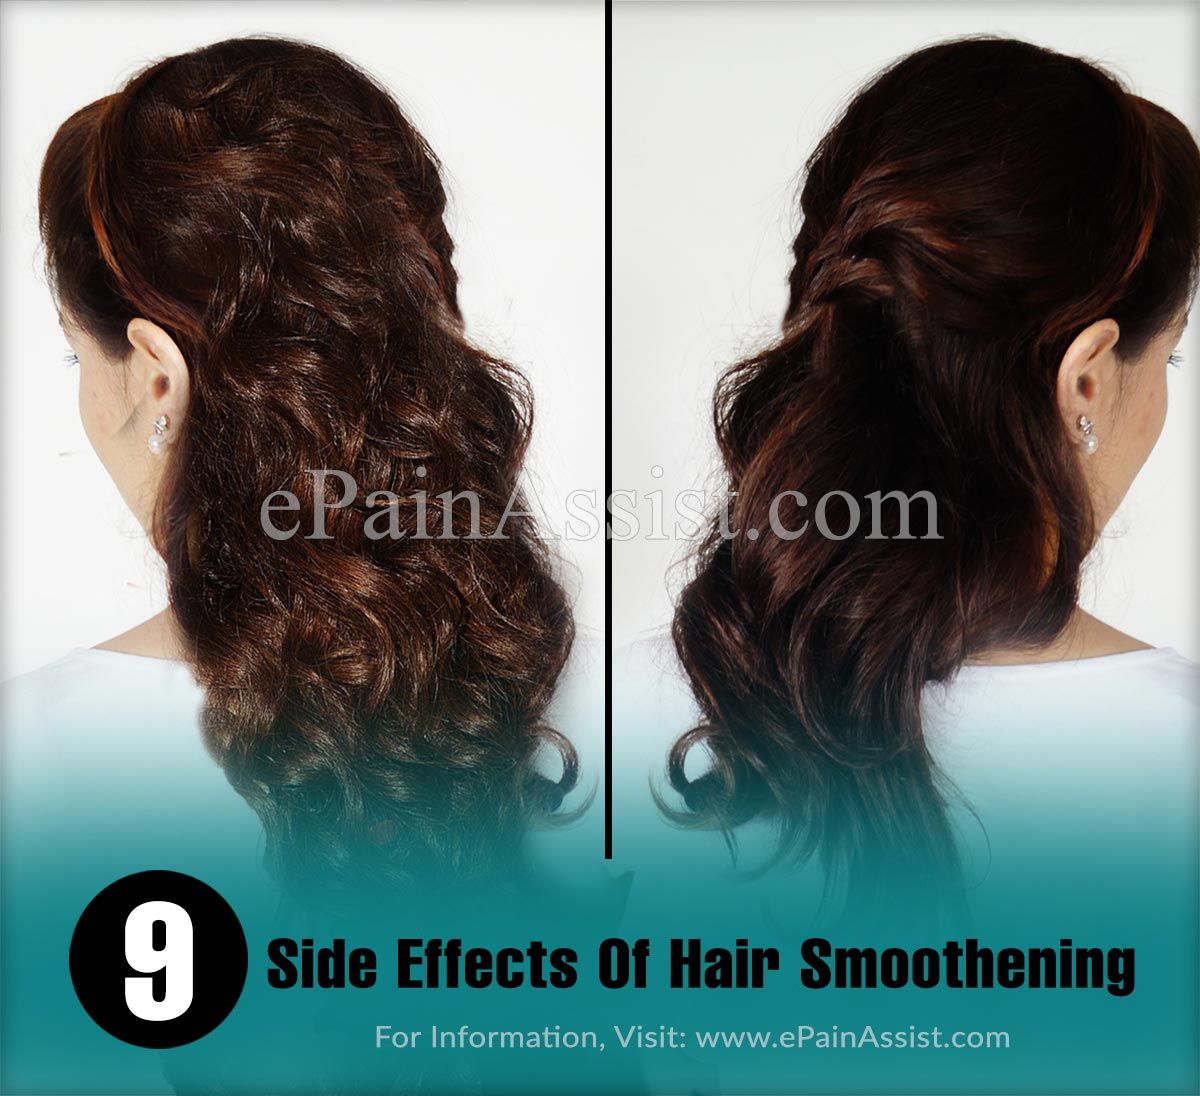 9 Side Effects Of Hair Smoothening